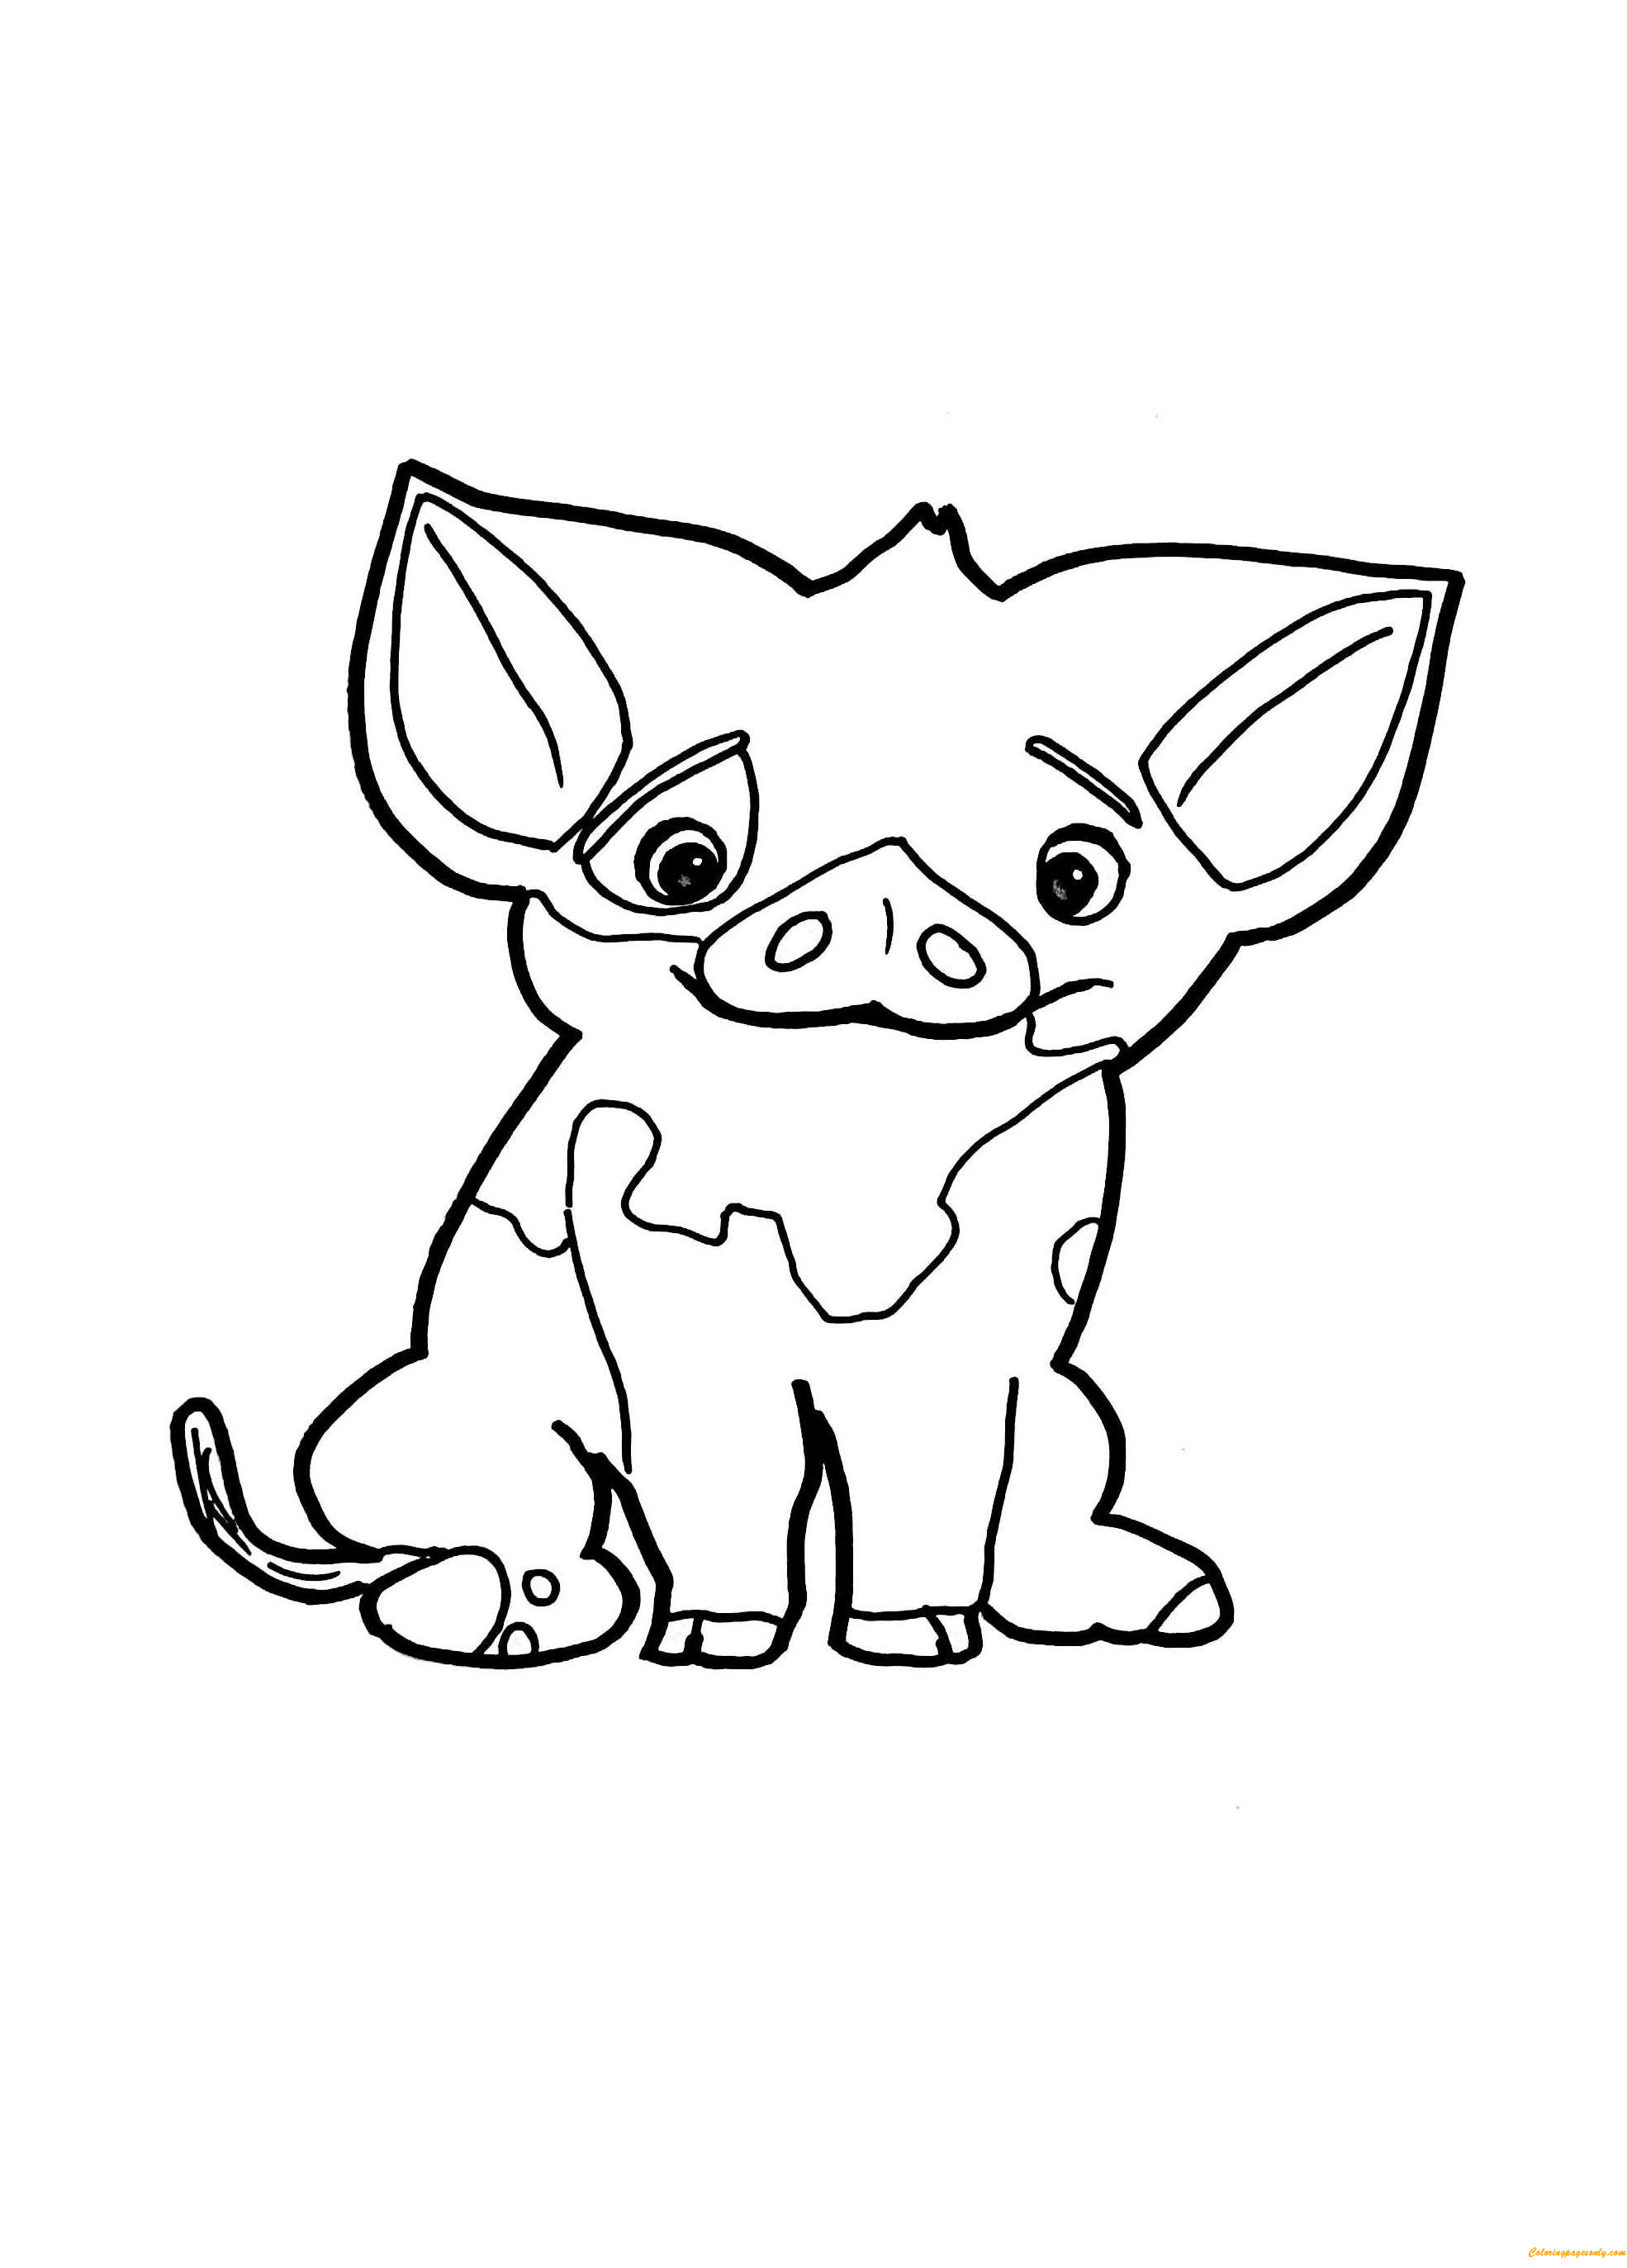 coloring page of pig pua pig from moana coloring page free coloring pages online coloring page pig of